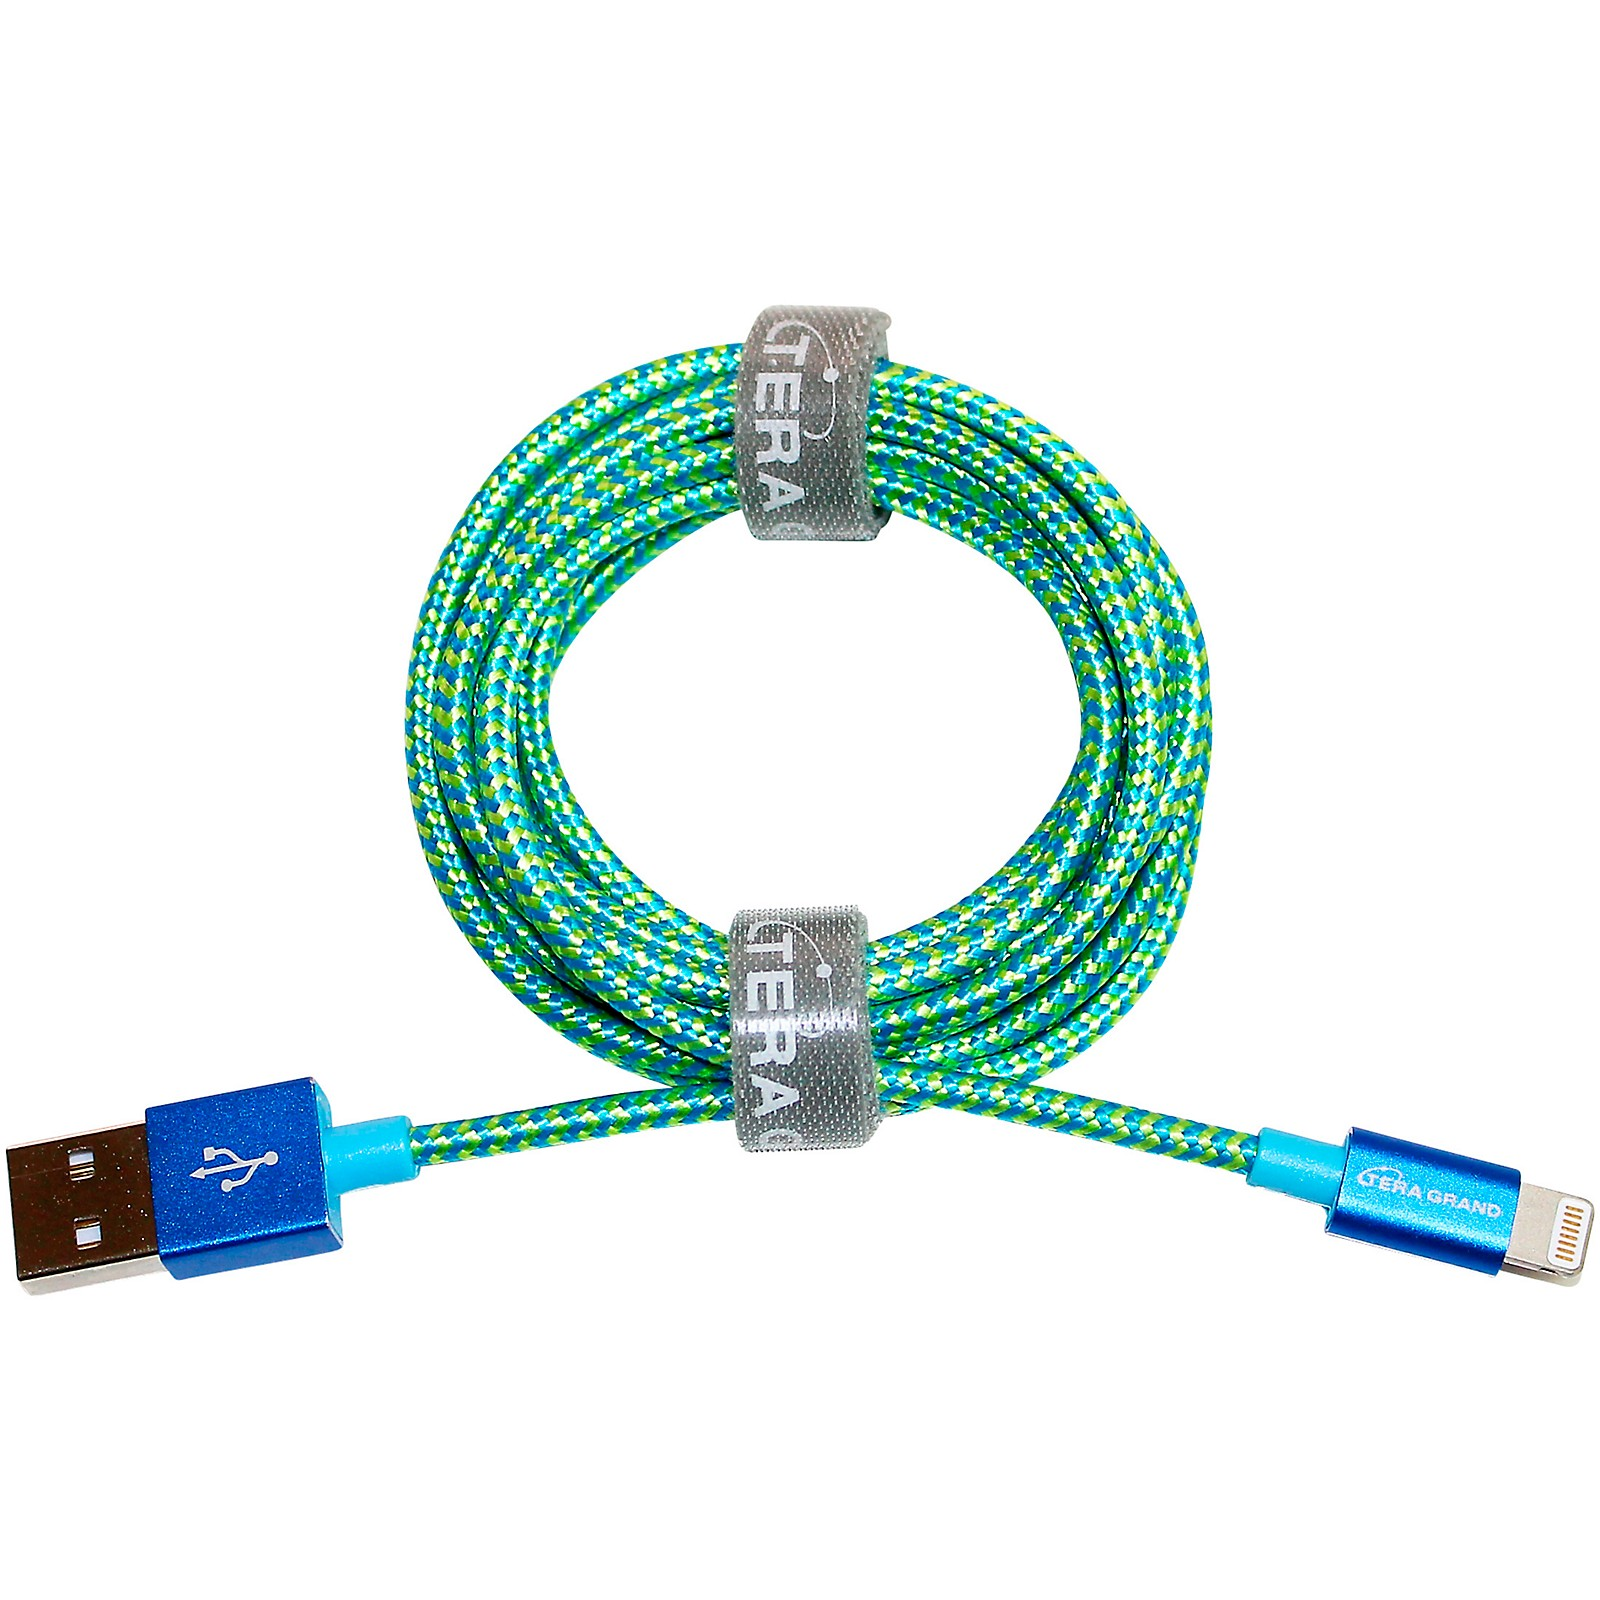 Tera Grand Apple MFi Certified - Lightning to USB Braided Cable with Aluminum Housing, 7 Feet Blue/Green